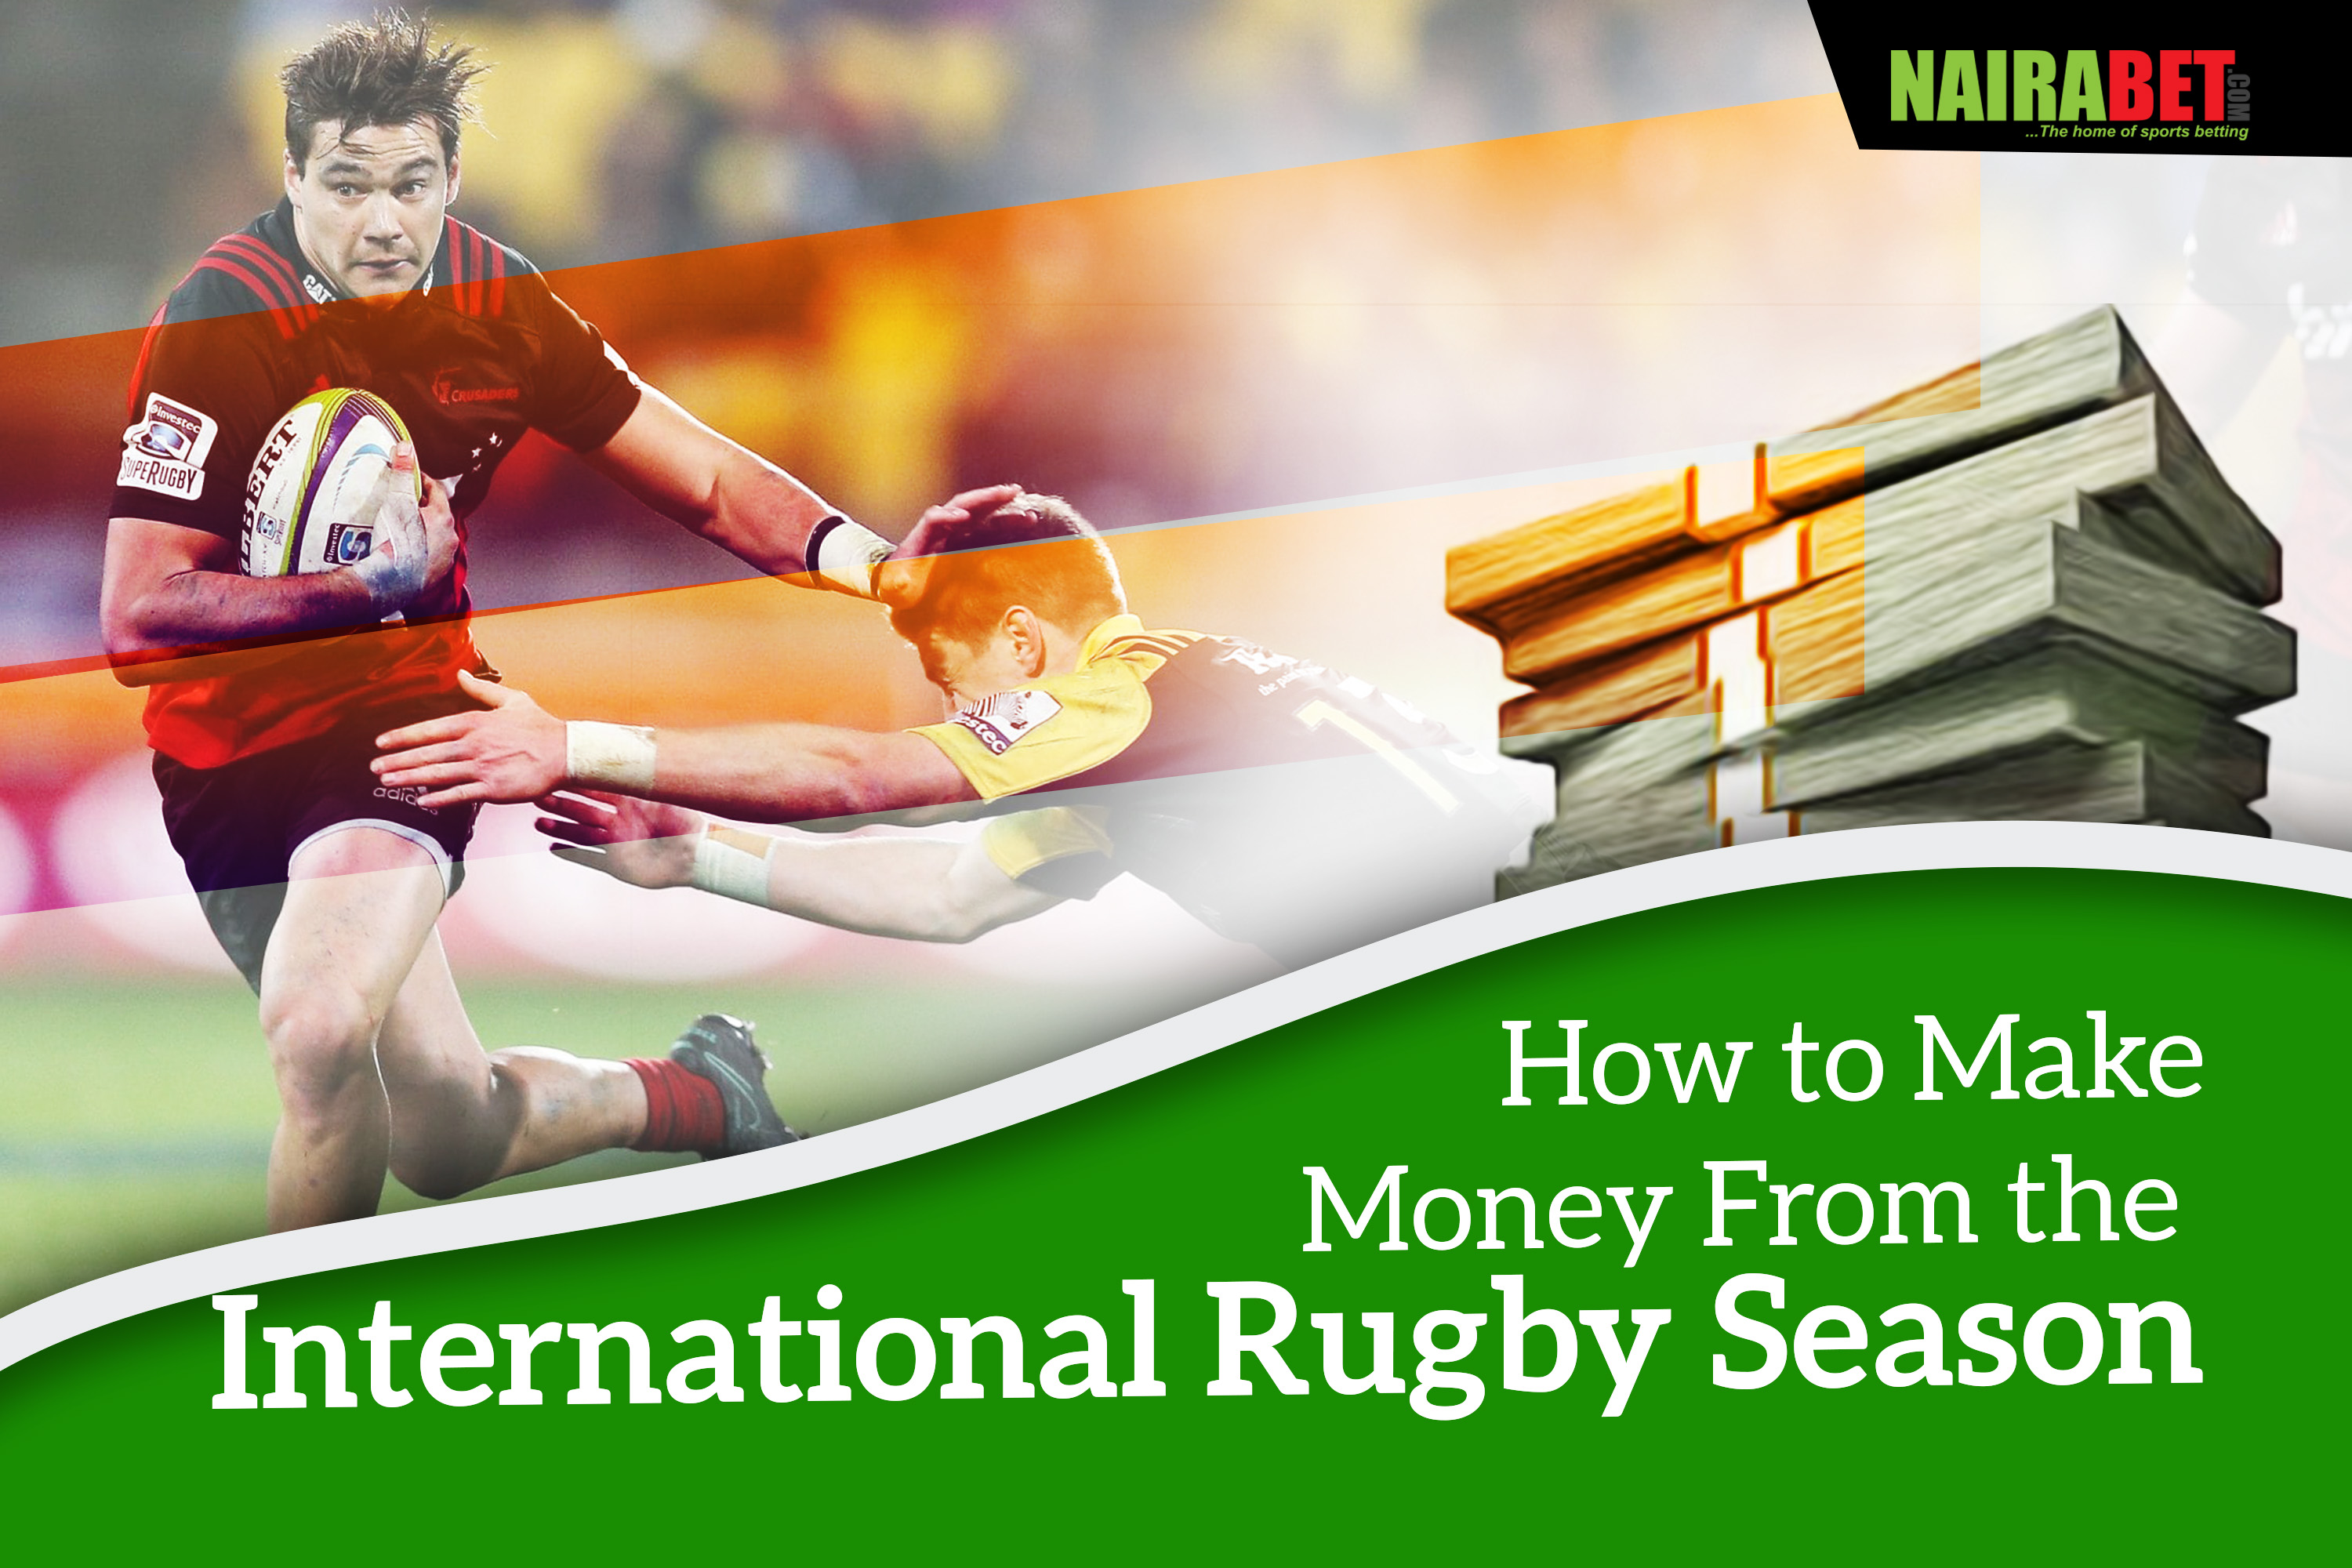 International Rugby Season